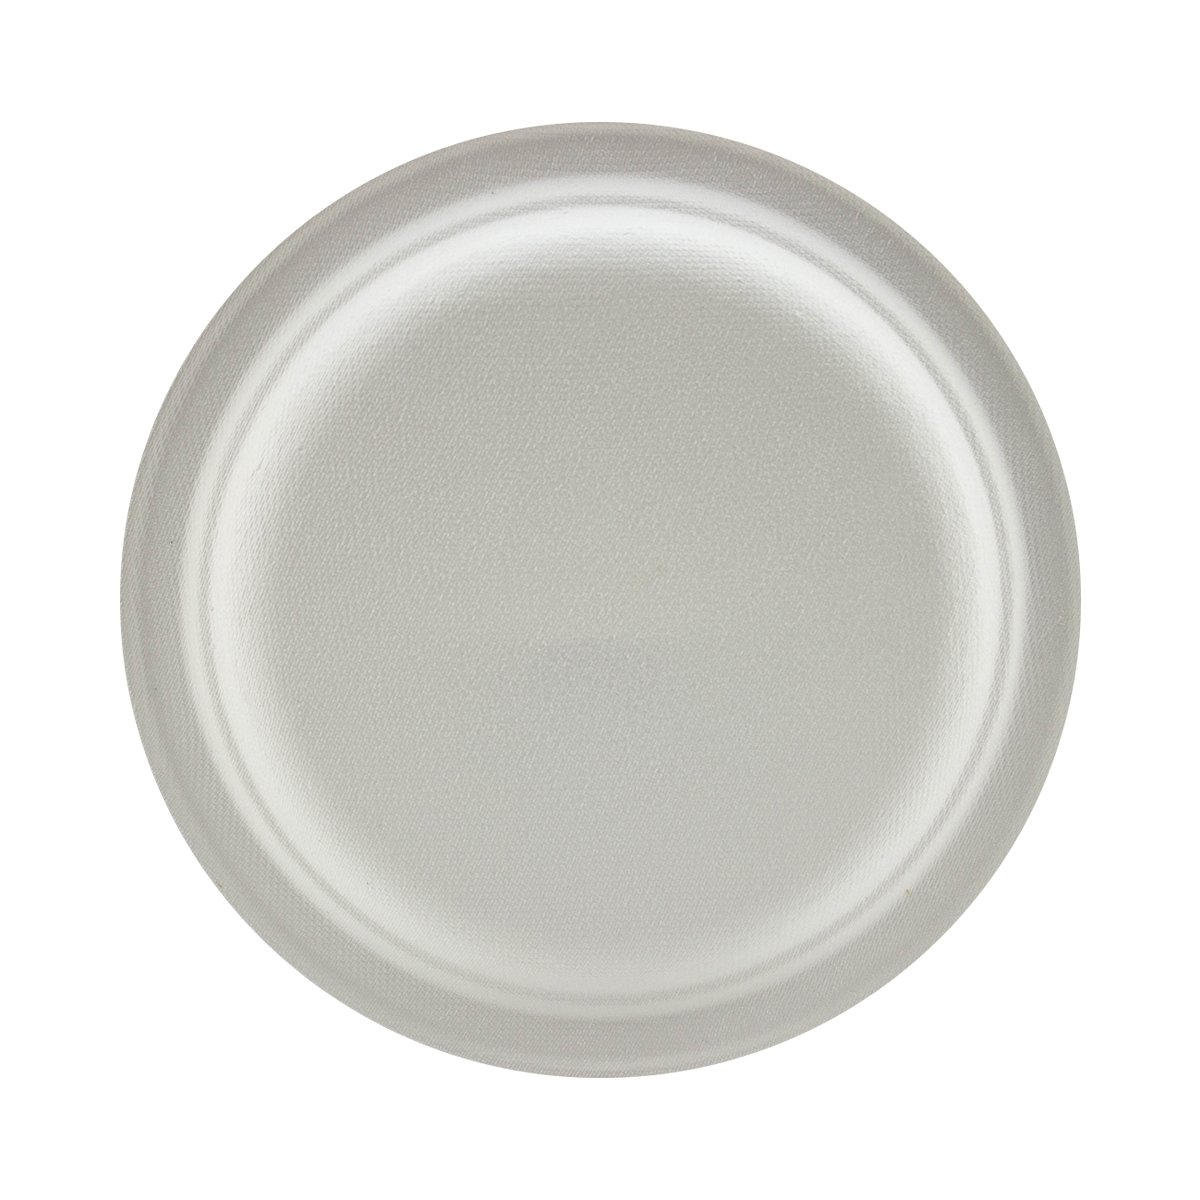 "18 cm Strong Paper Plates Round Party Plates 125 Pack 7/"" Super Rigid Bagasse Plates Biodegradable and Disposable Eco-Friendly Non Plastic Alternative 7 inch"